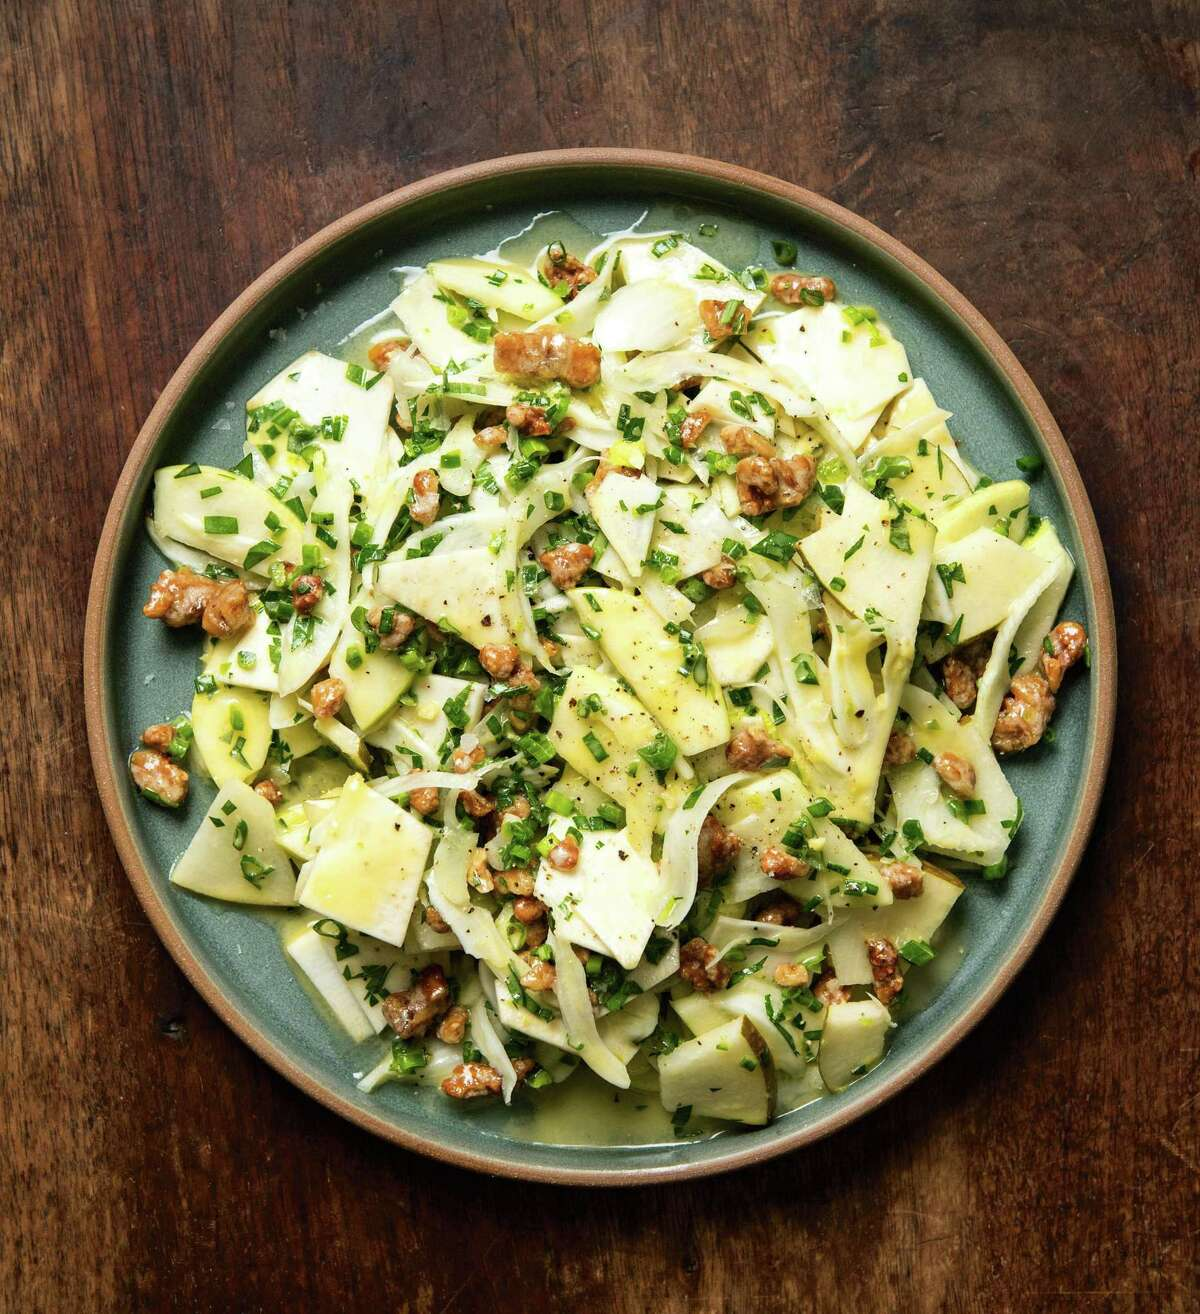 """Celery Root, Fennel, Pear, and Apple Salad with Meyer Lemon Vinaigrette from """"Chasing Flavor: Techniques and Recipes to Cook Fearlessly"""" by Dan Kluger with Nick Fauchald."""